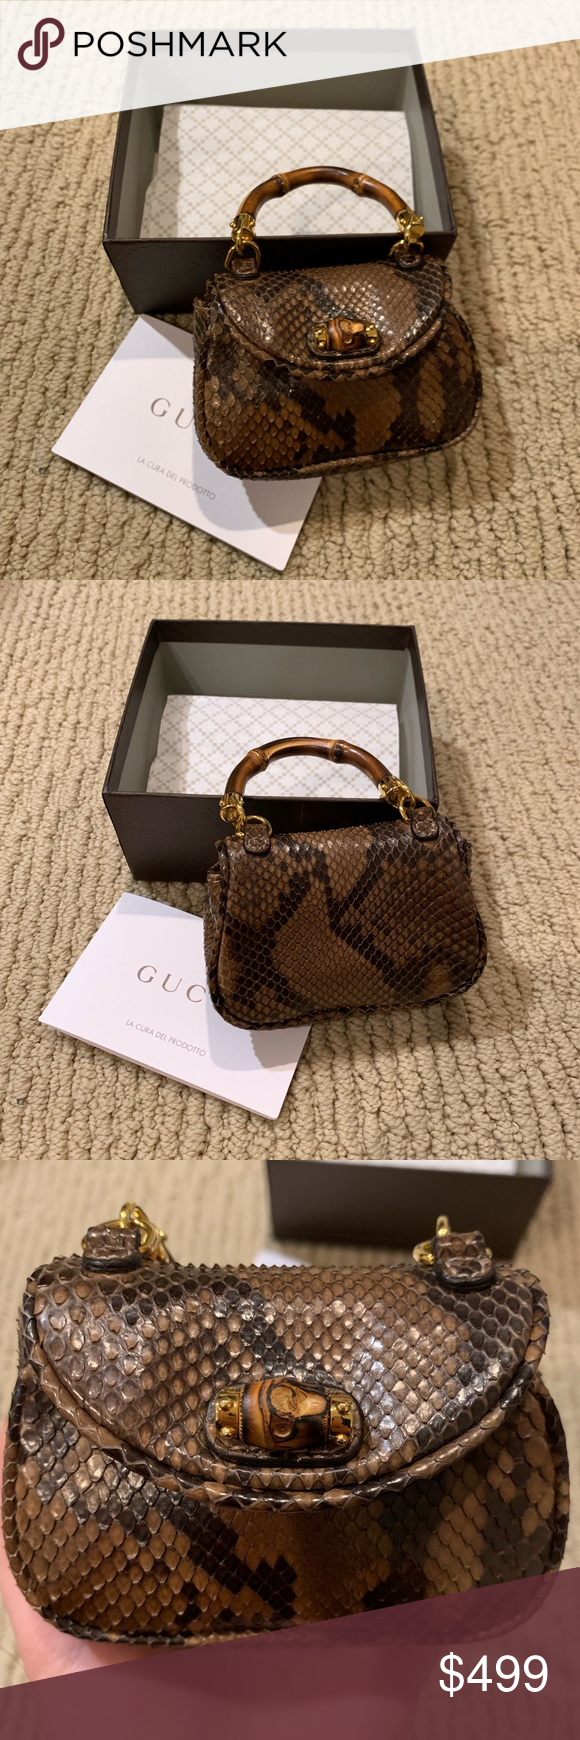 ccfc364961b NWT Authentic Gucci Mini Python Skin Purse A limited edition mini Bamboo  top purse from Gucci